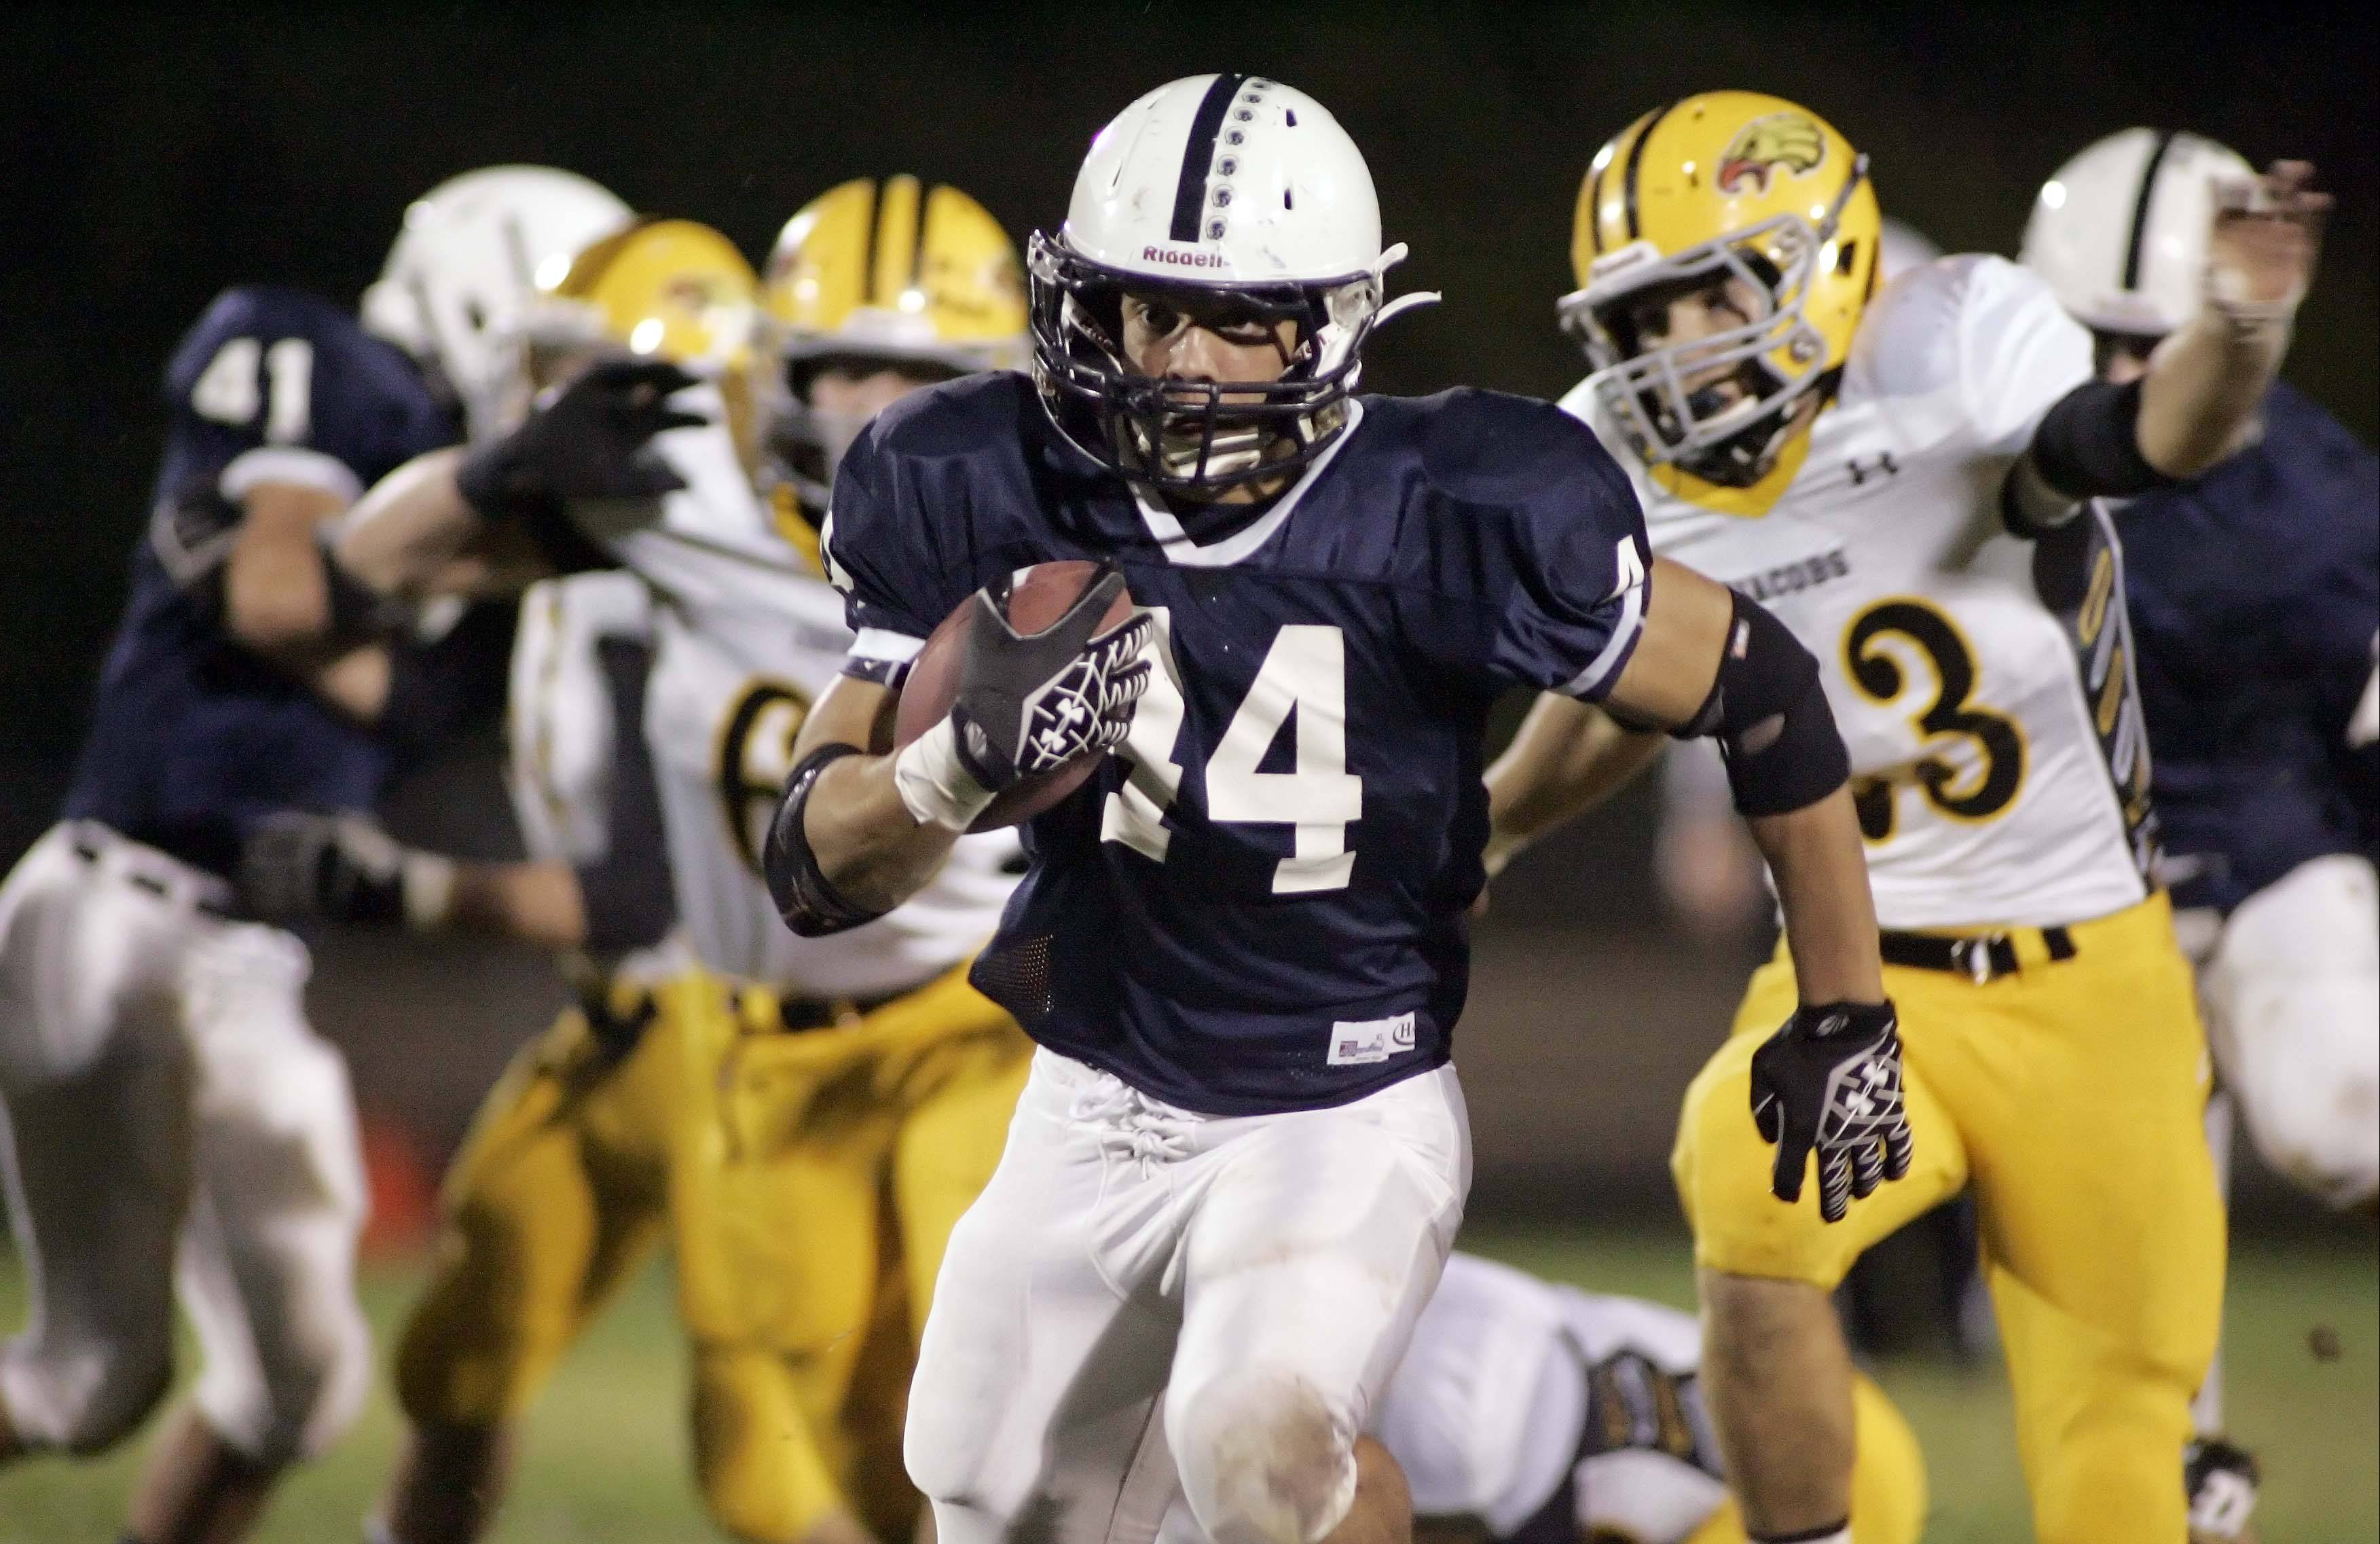 Cary-Grove's Kyle Norberg (44) runs for a touchdown during the first quarter of the Trojans' win over Jacobs Friday night in Cary.